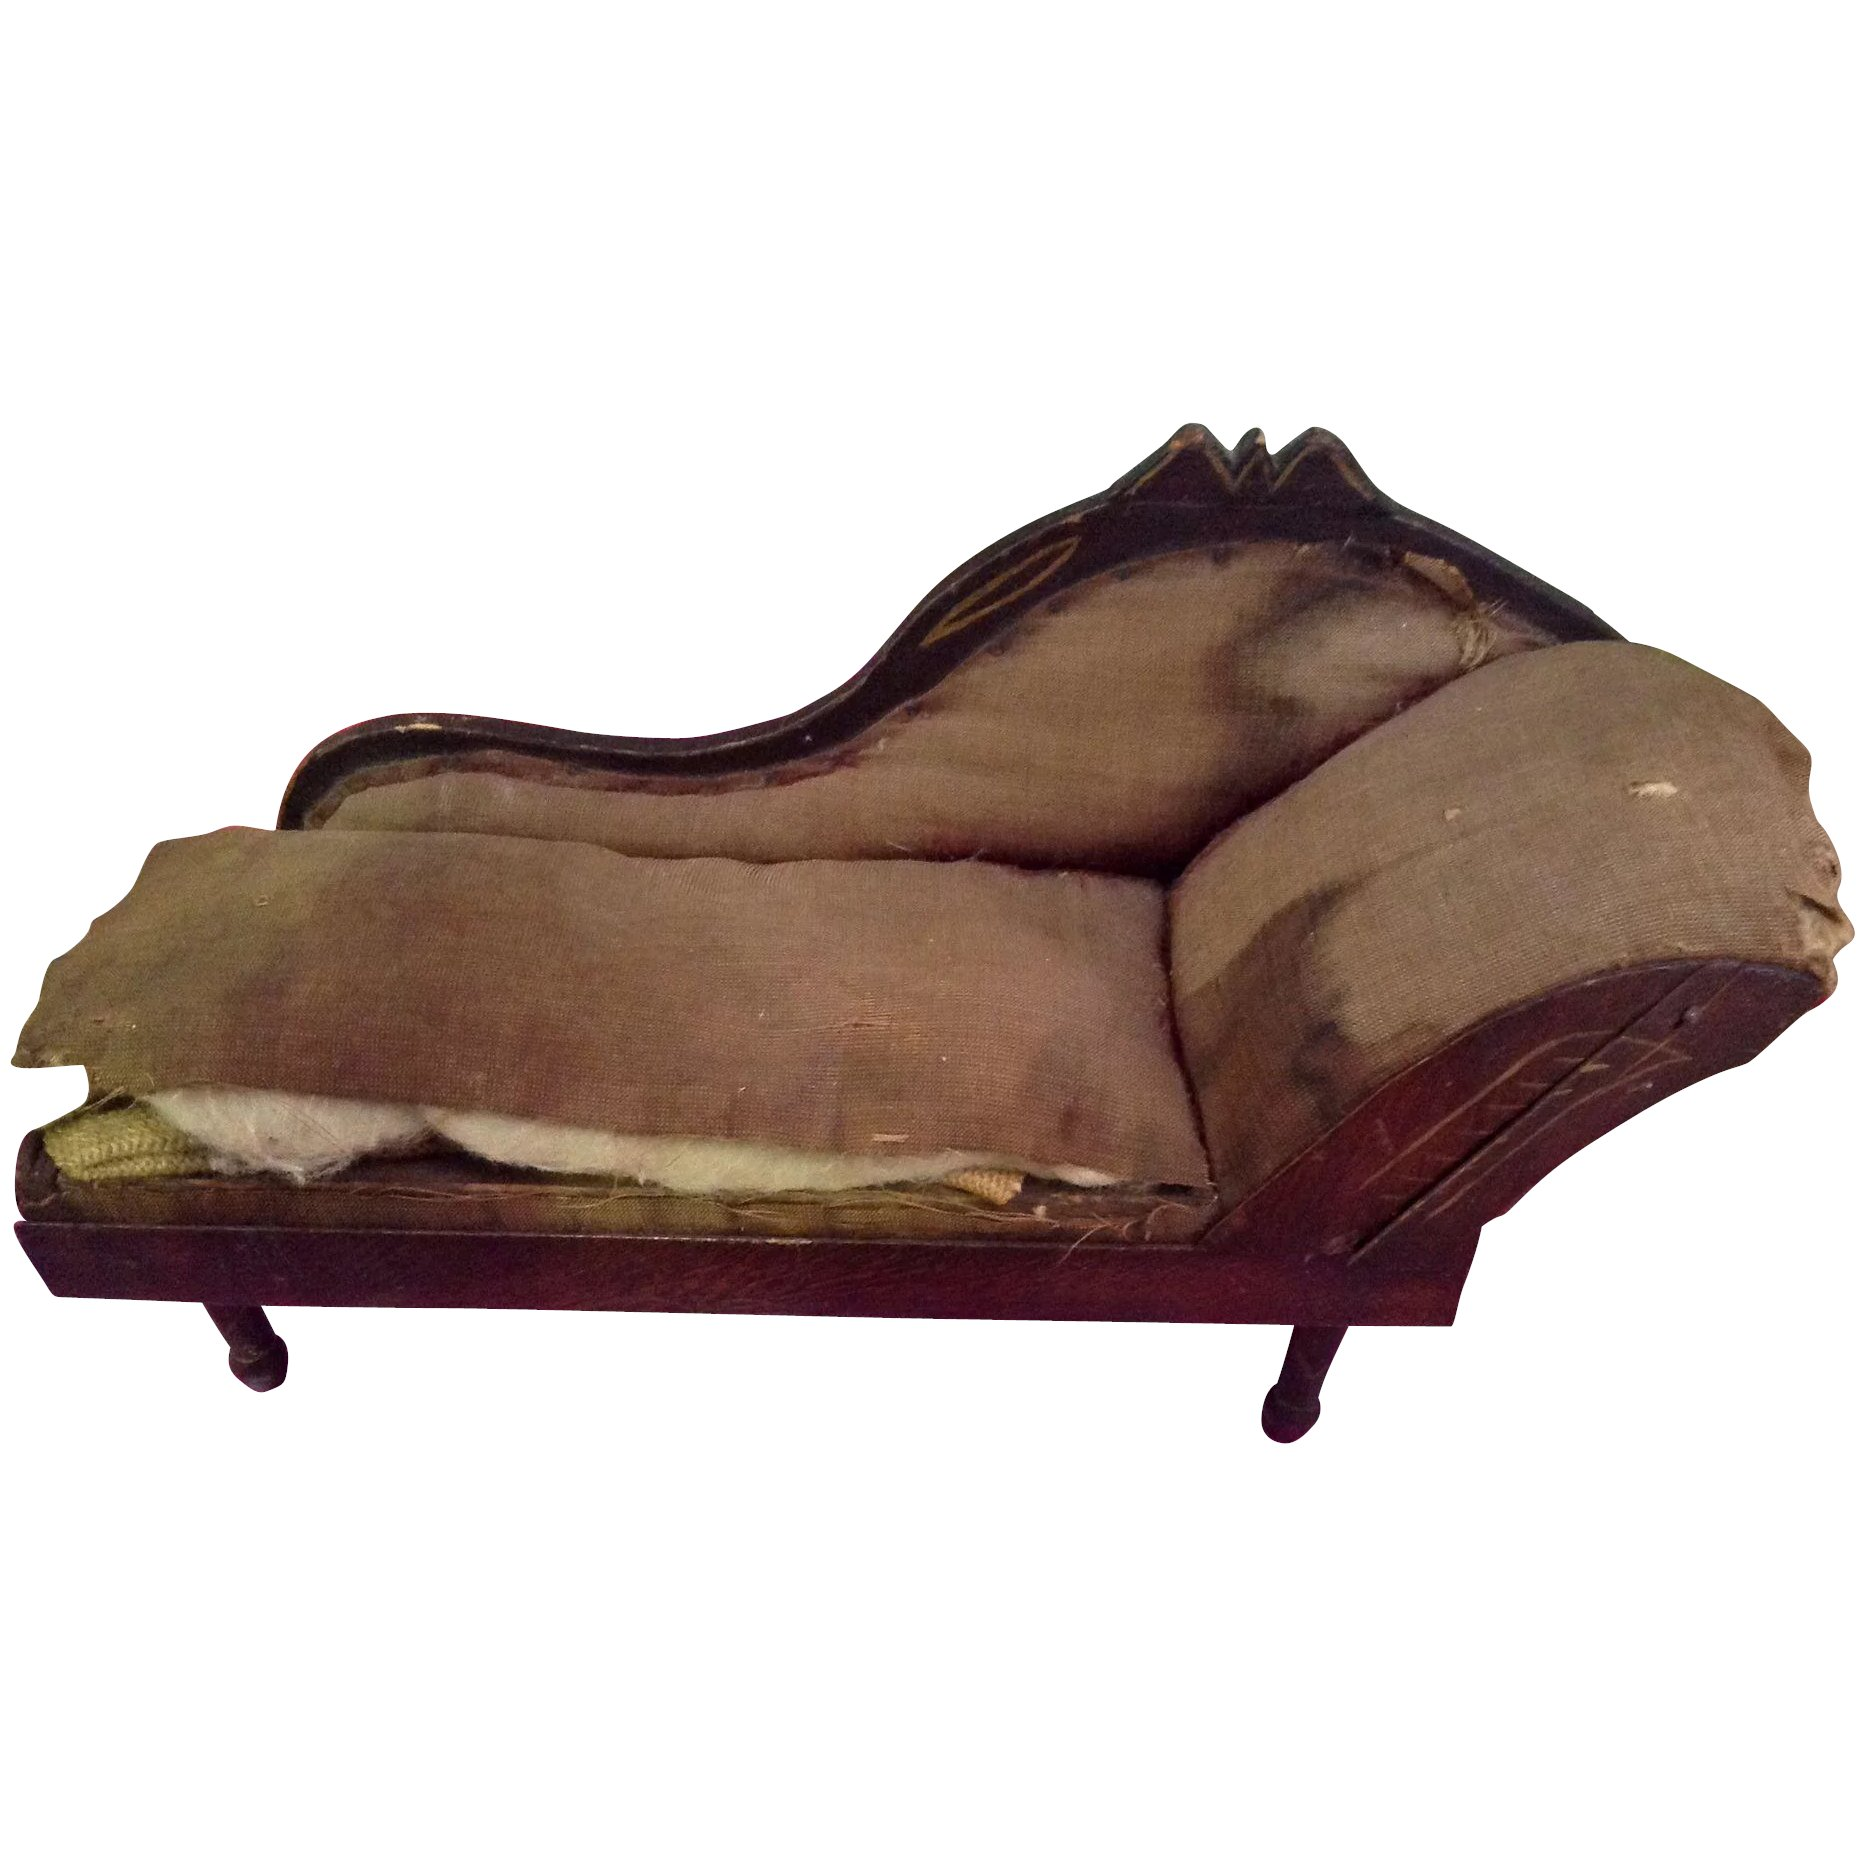 Antique wooden dolls chaise lounge daisydoradolls ruby for Antique chaise lounge prices